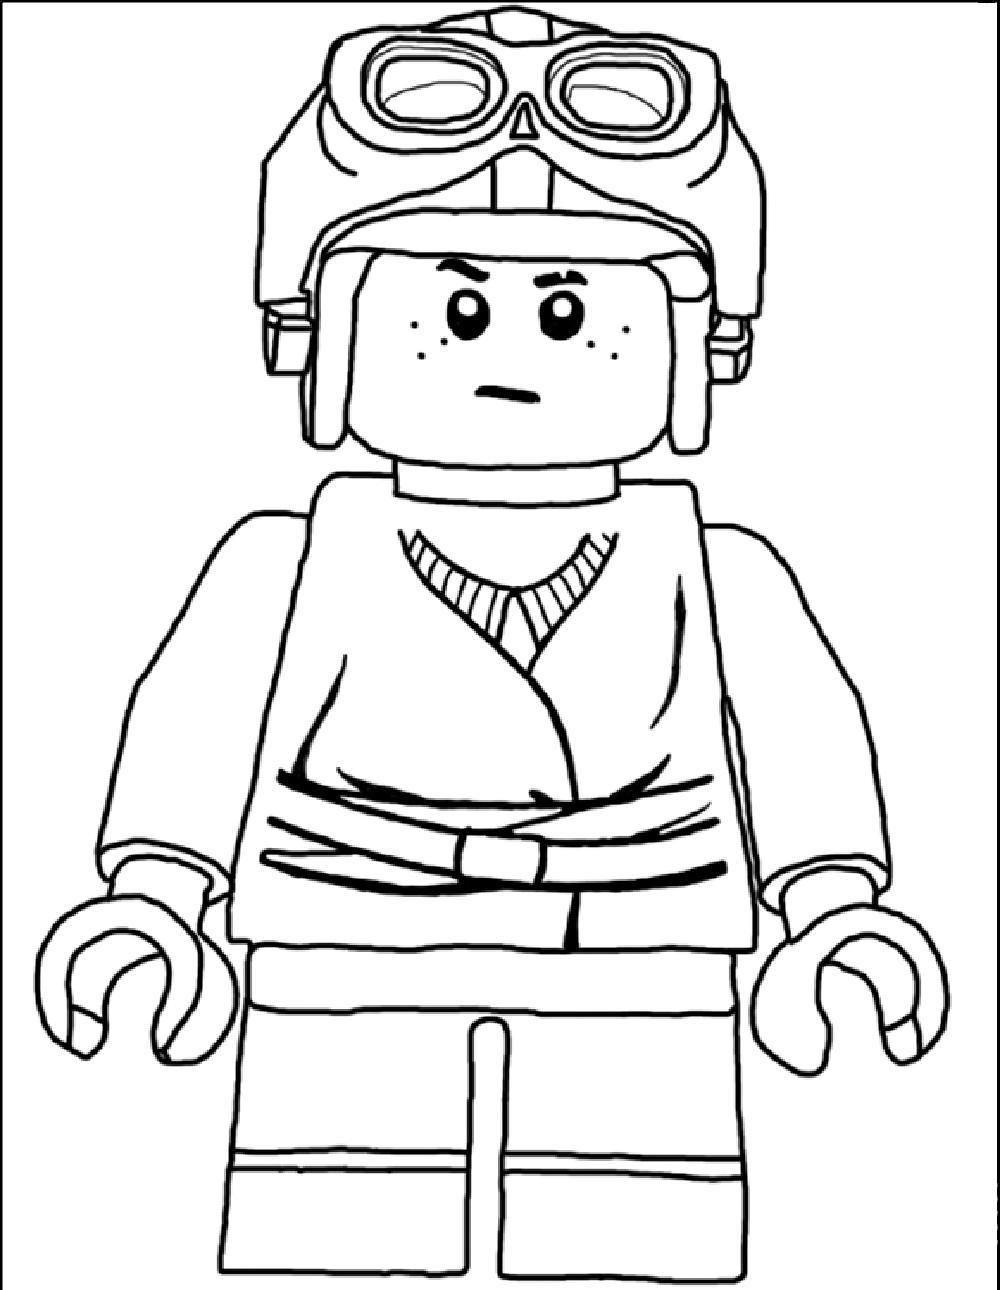 star wars lego coloring page pro děti pinterest lego star